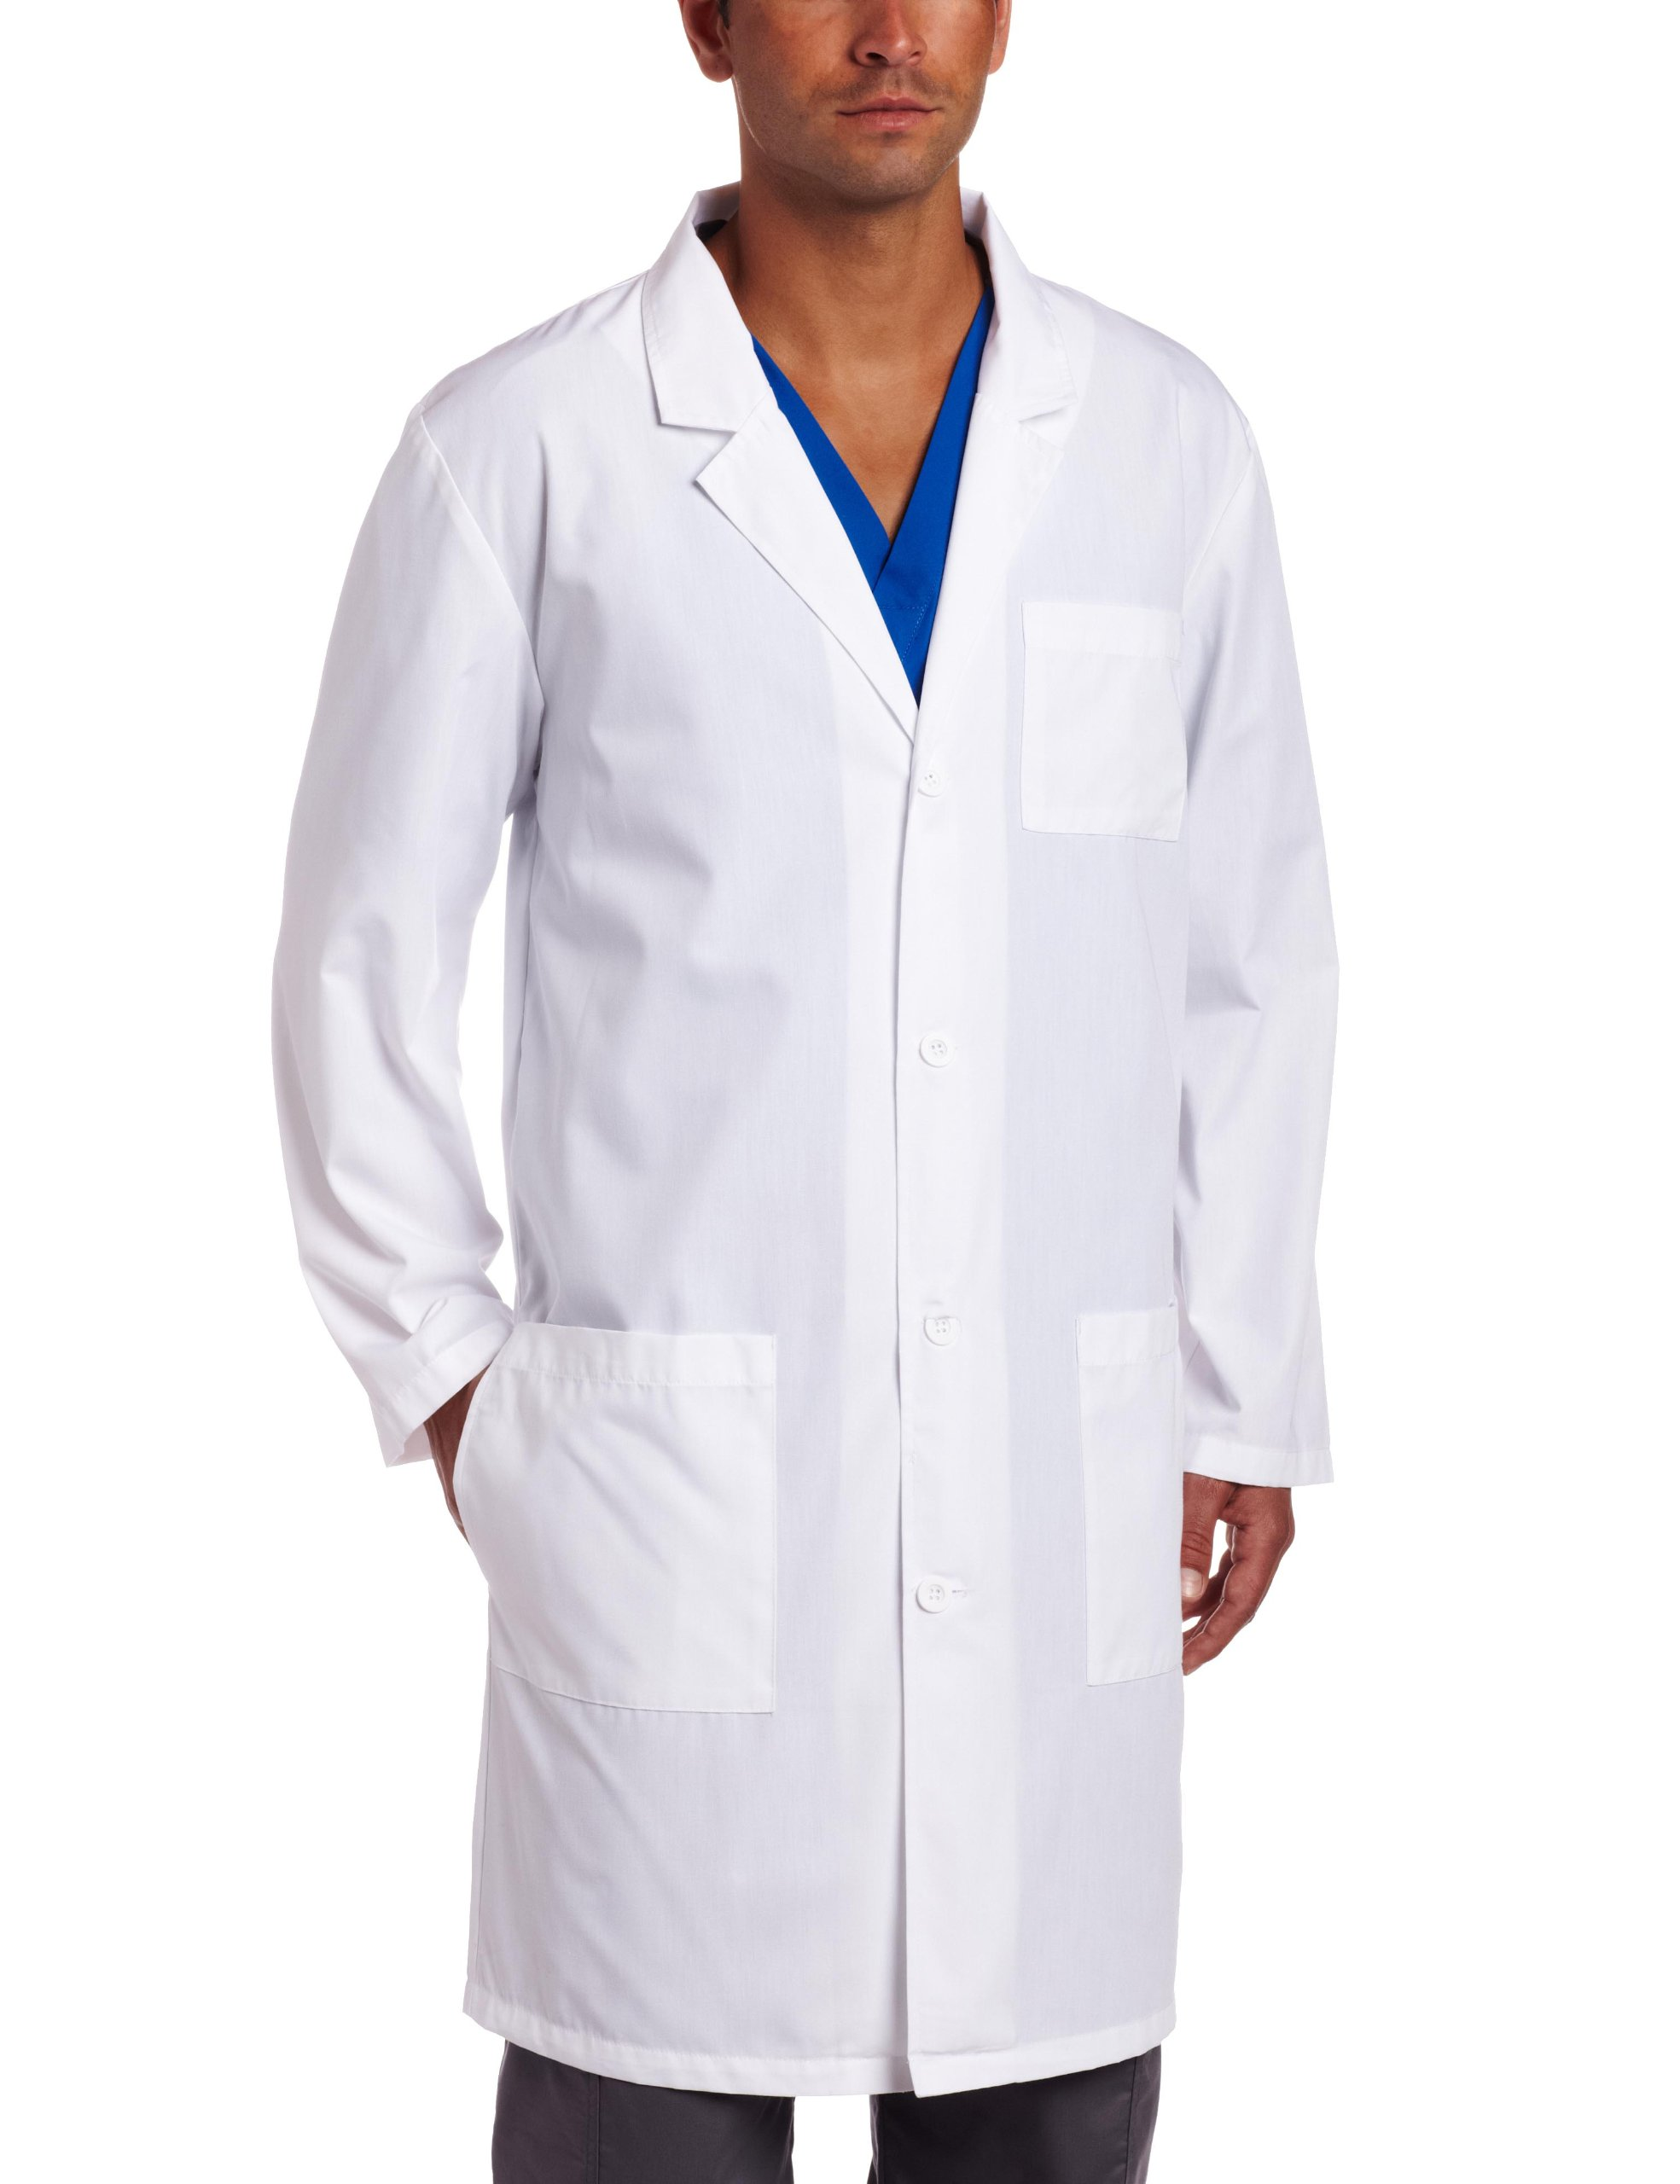 Dickies Everyday Unisex 40 Inch Lab Coat, White, Large by Dickies